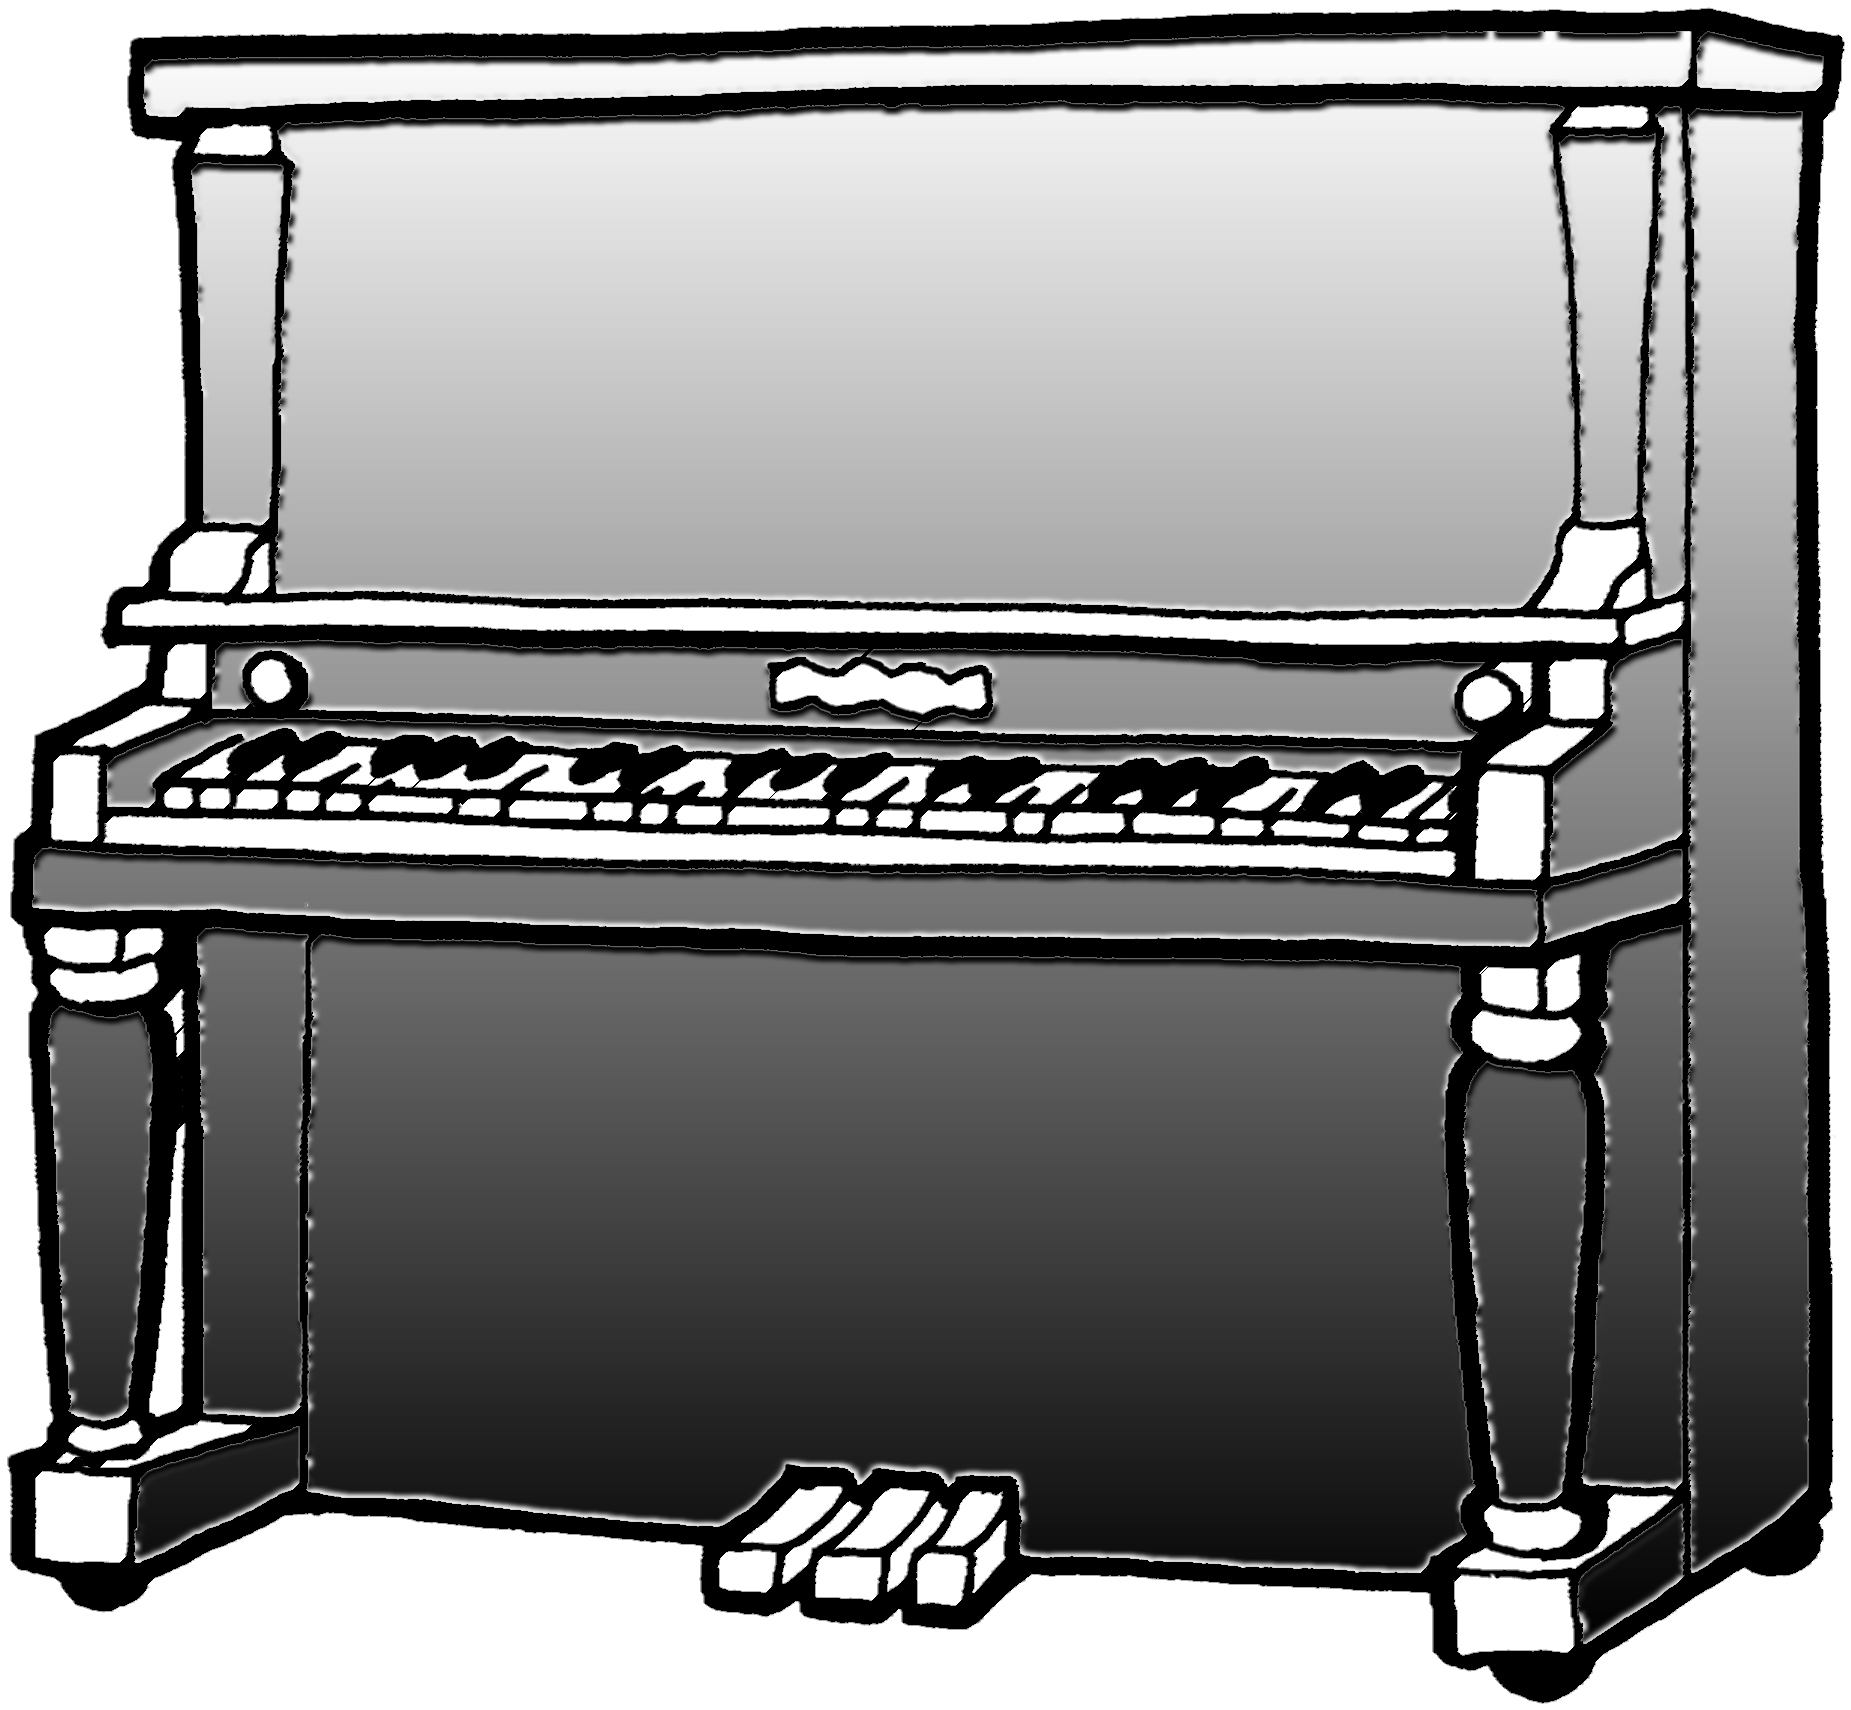 Upright piano clipart clip art download Upright Piano Sketch at PaintingValley.com   Explore ... clip art download